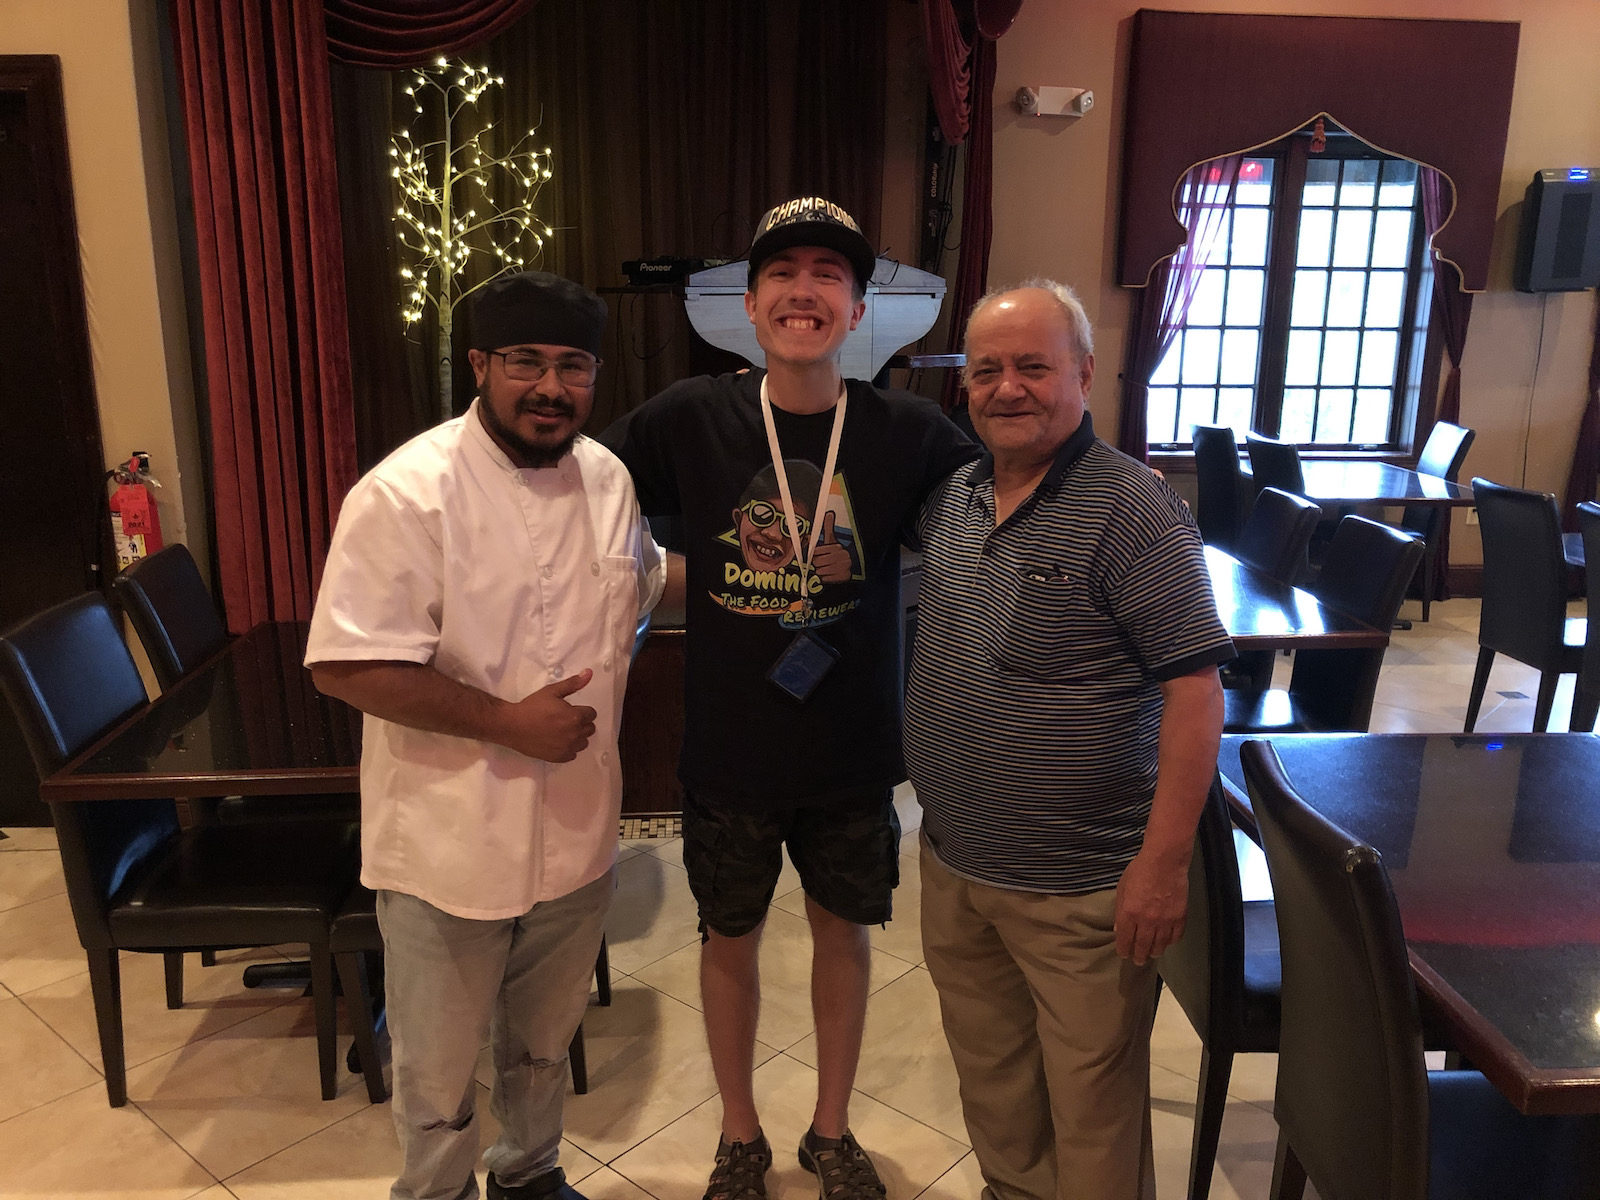 Dominic and the Casablanca chefs